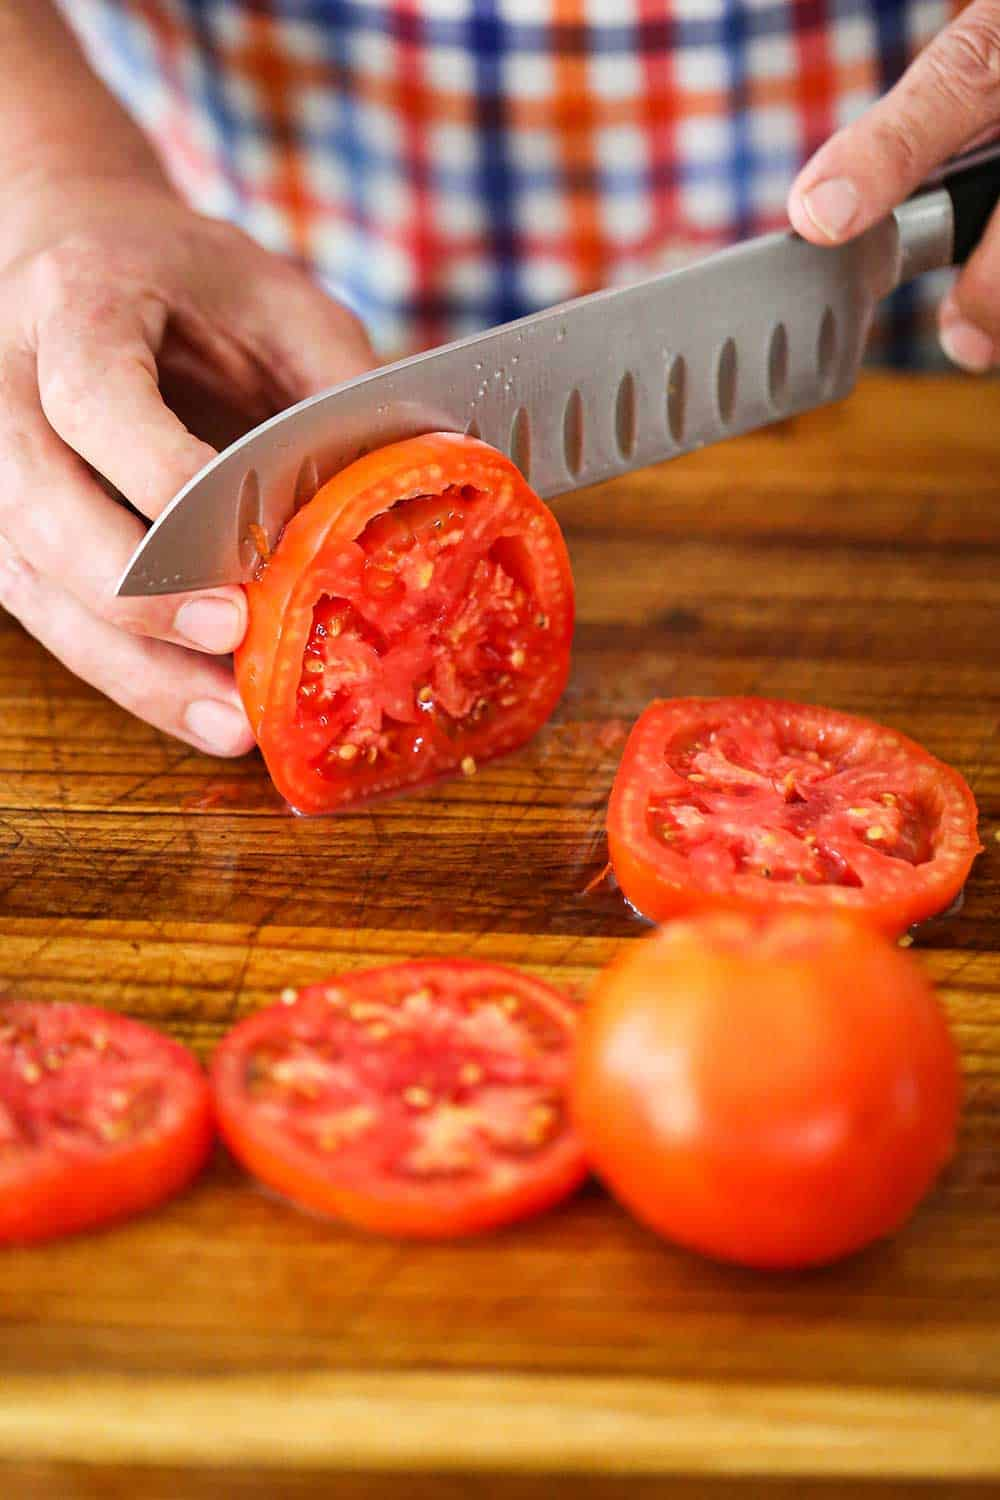 A person using a chef's knife to slice a very red tomato on a cutting board with other tomato slices nearby.